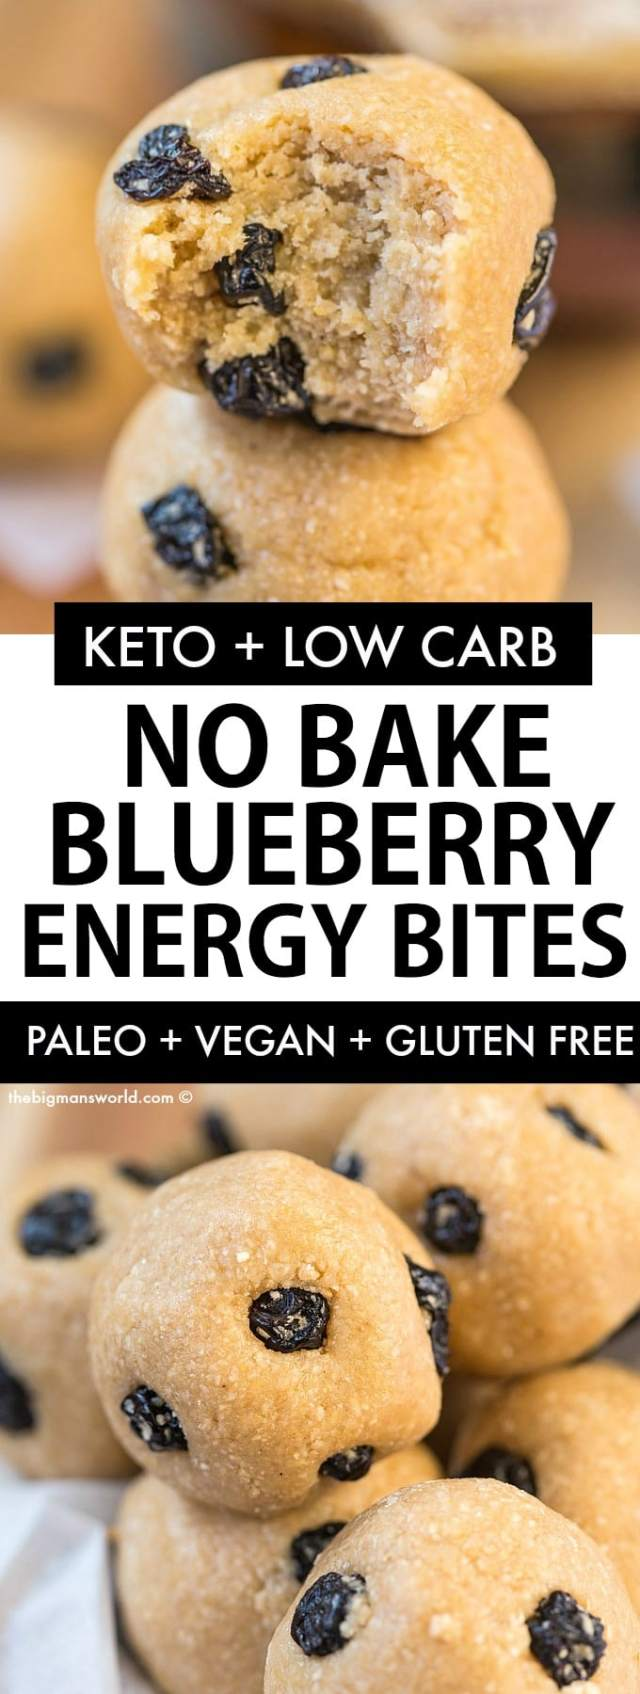 Keto Vegan Blueberry Energy Bites that taste like a blueberry muffin